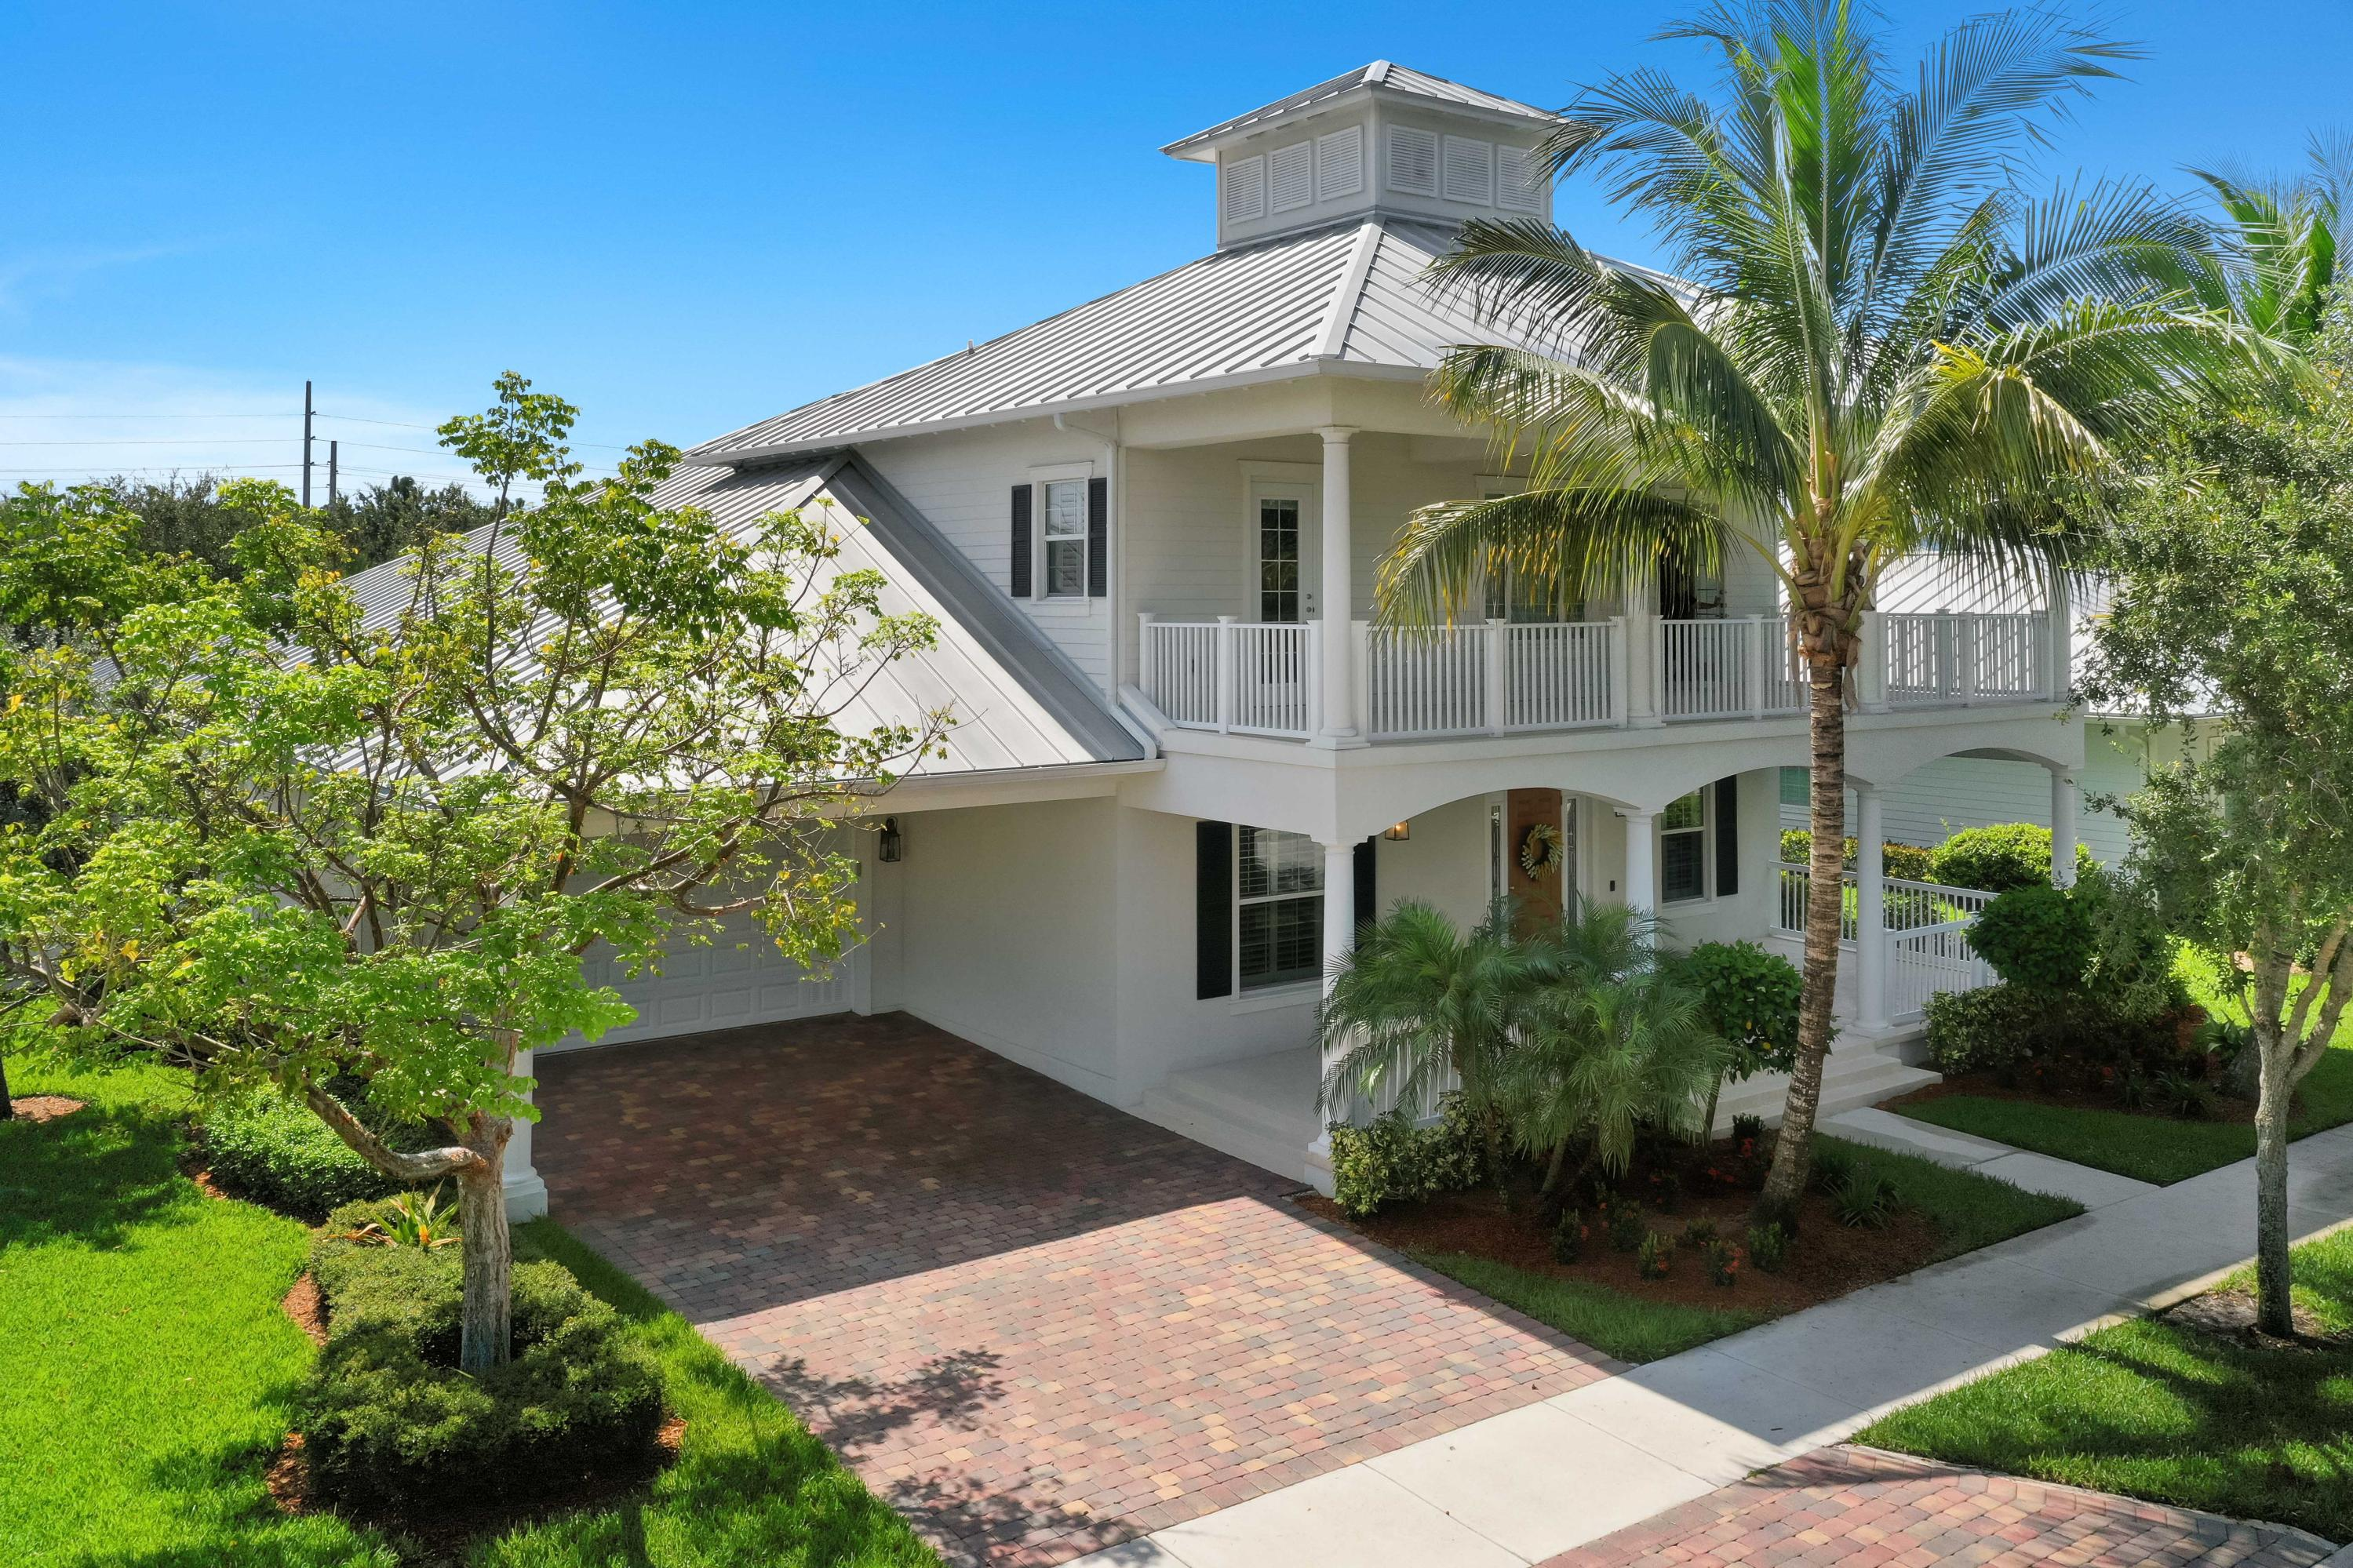 New Home for sale at 3303 Duval Street in Jupiter